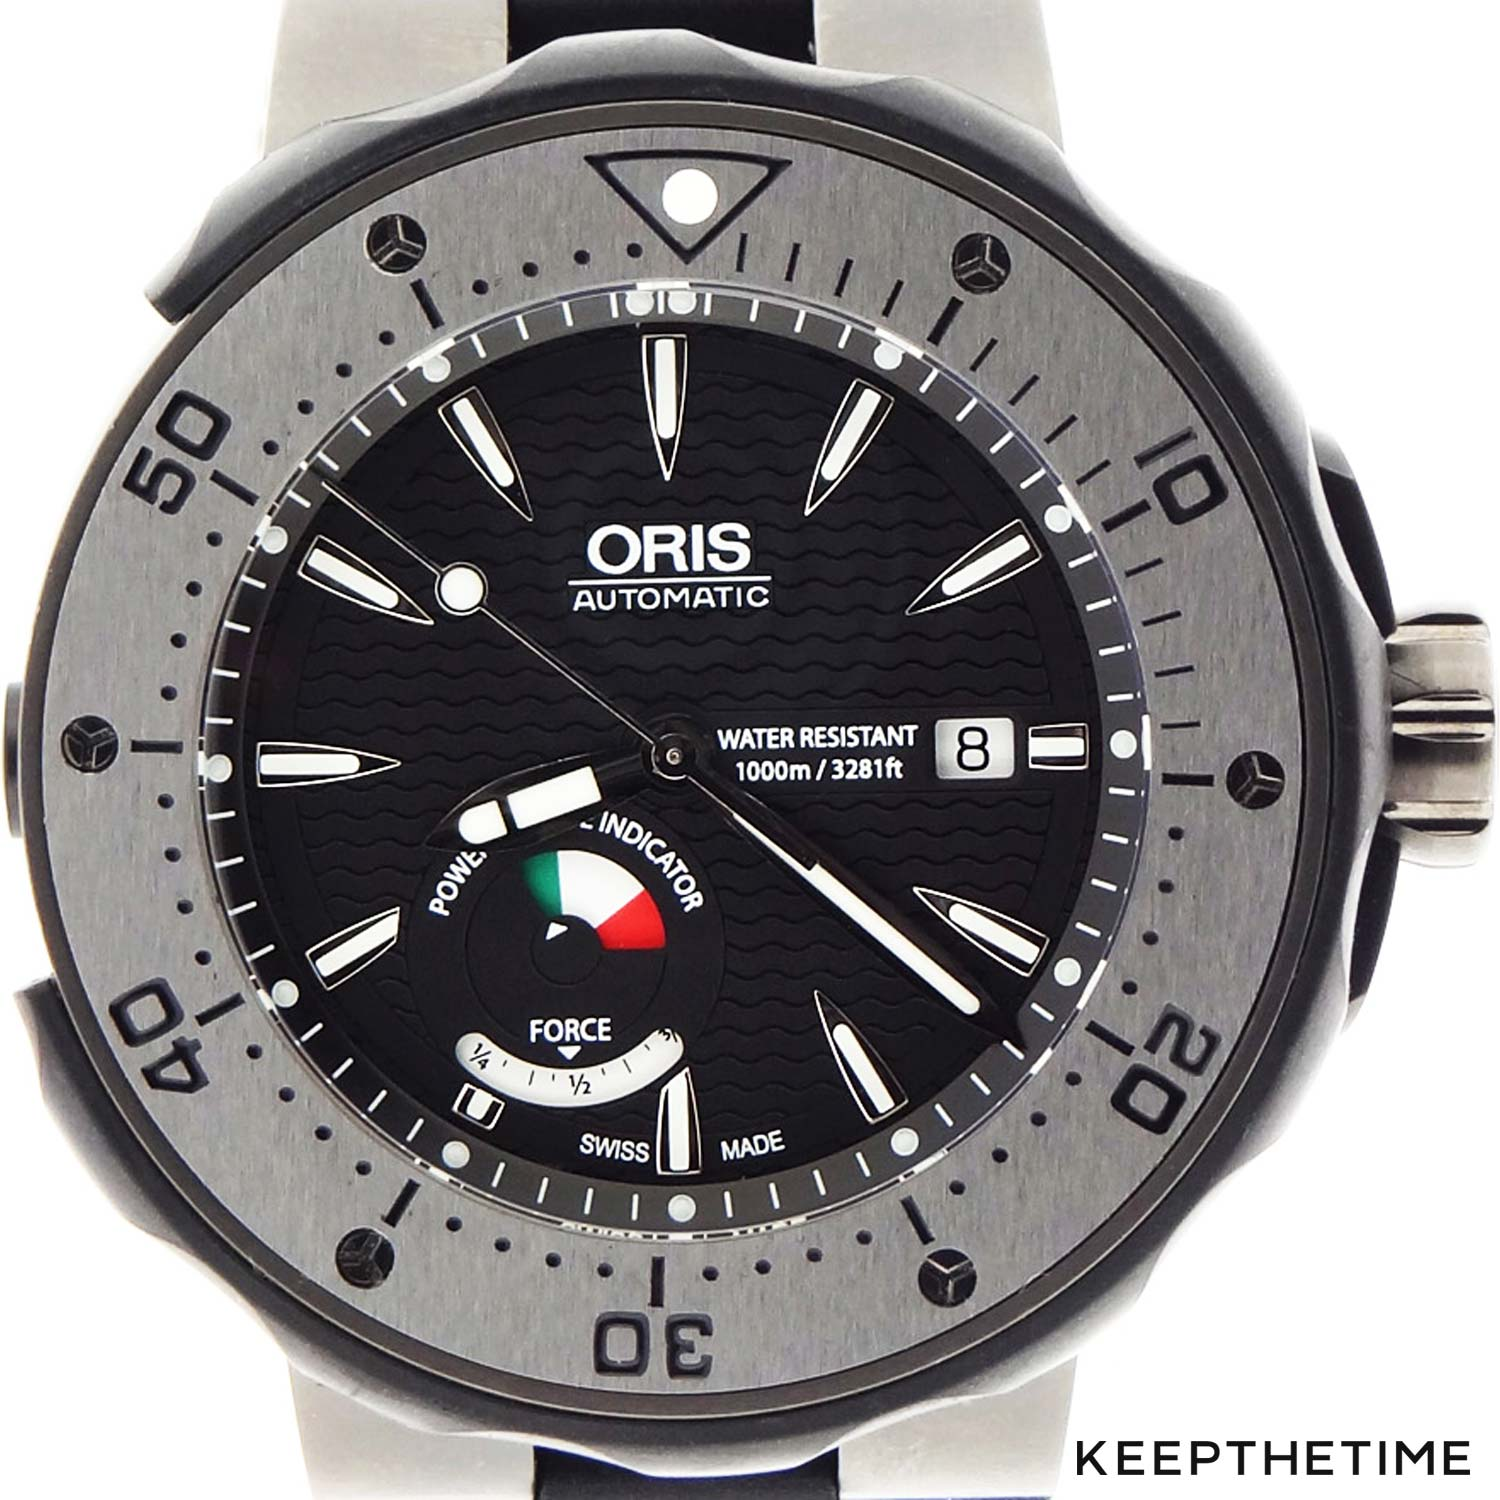 Oris prodiver dive control limited edition watch hands-on.